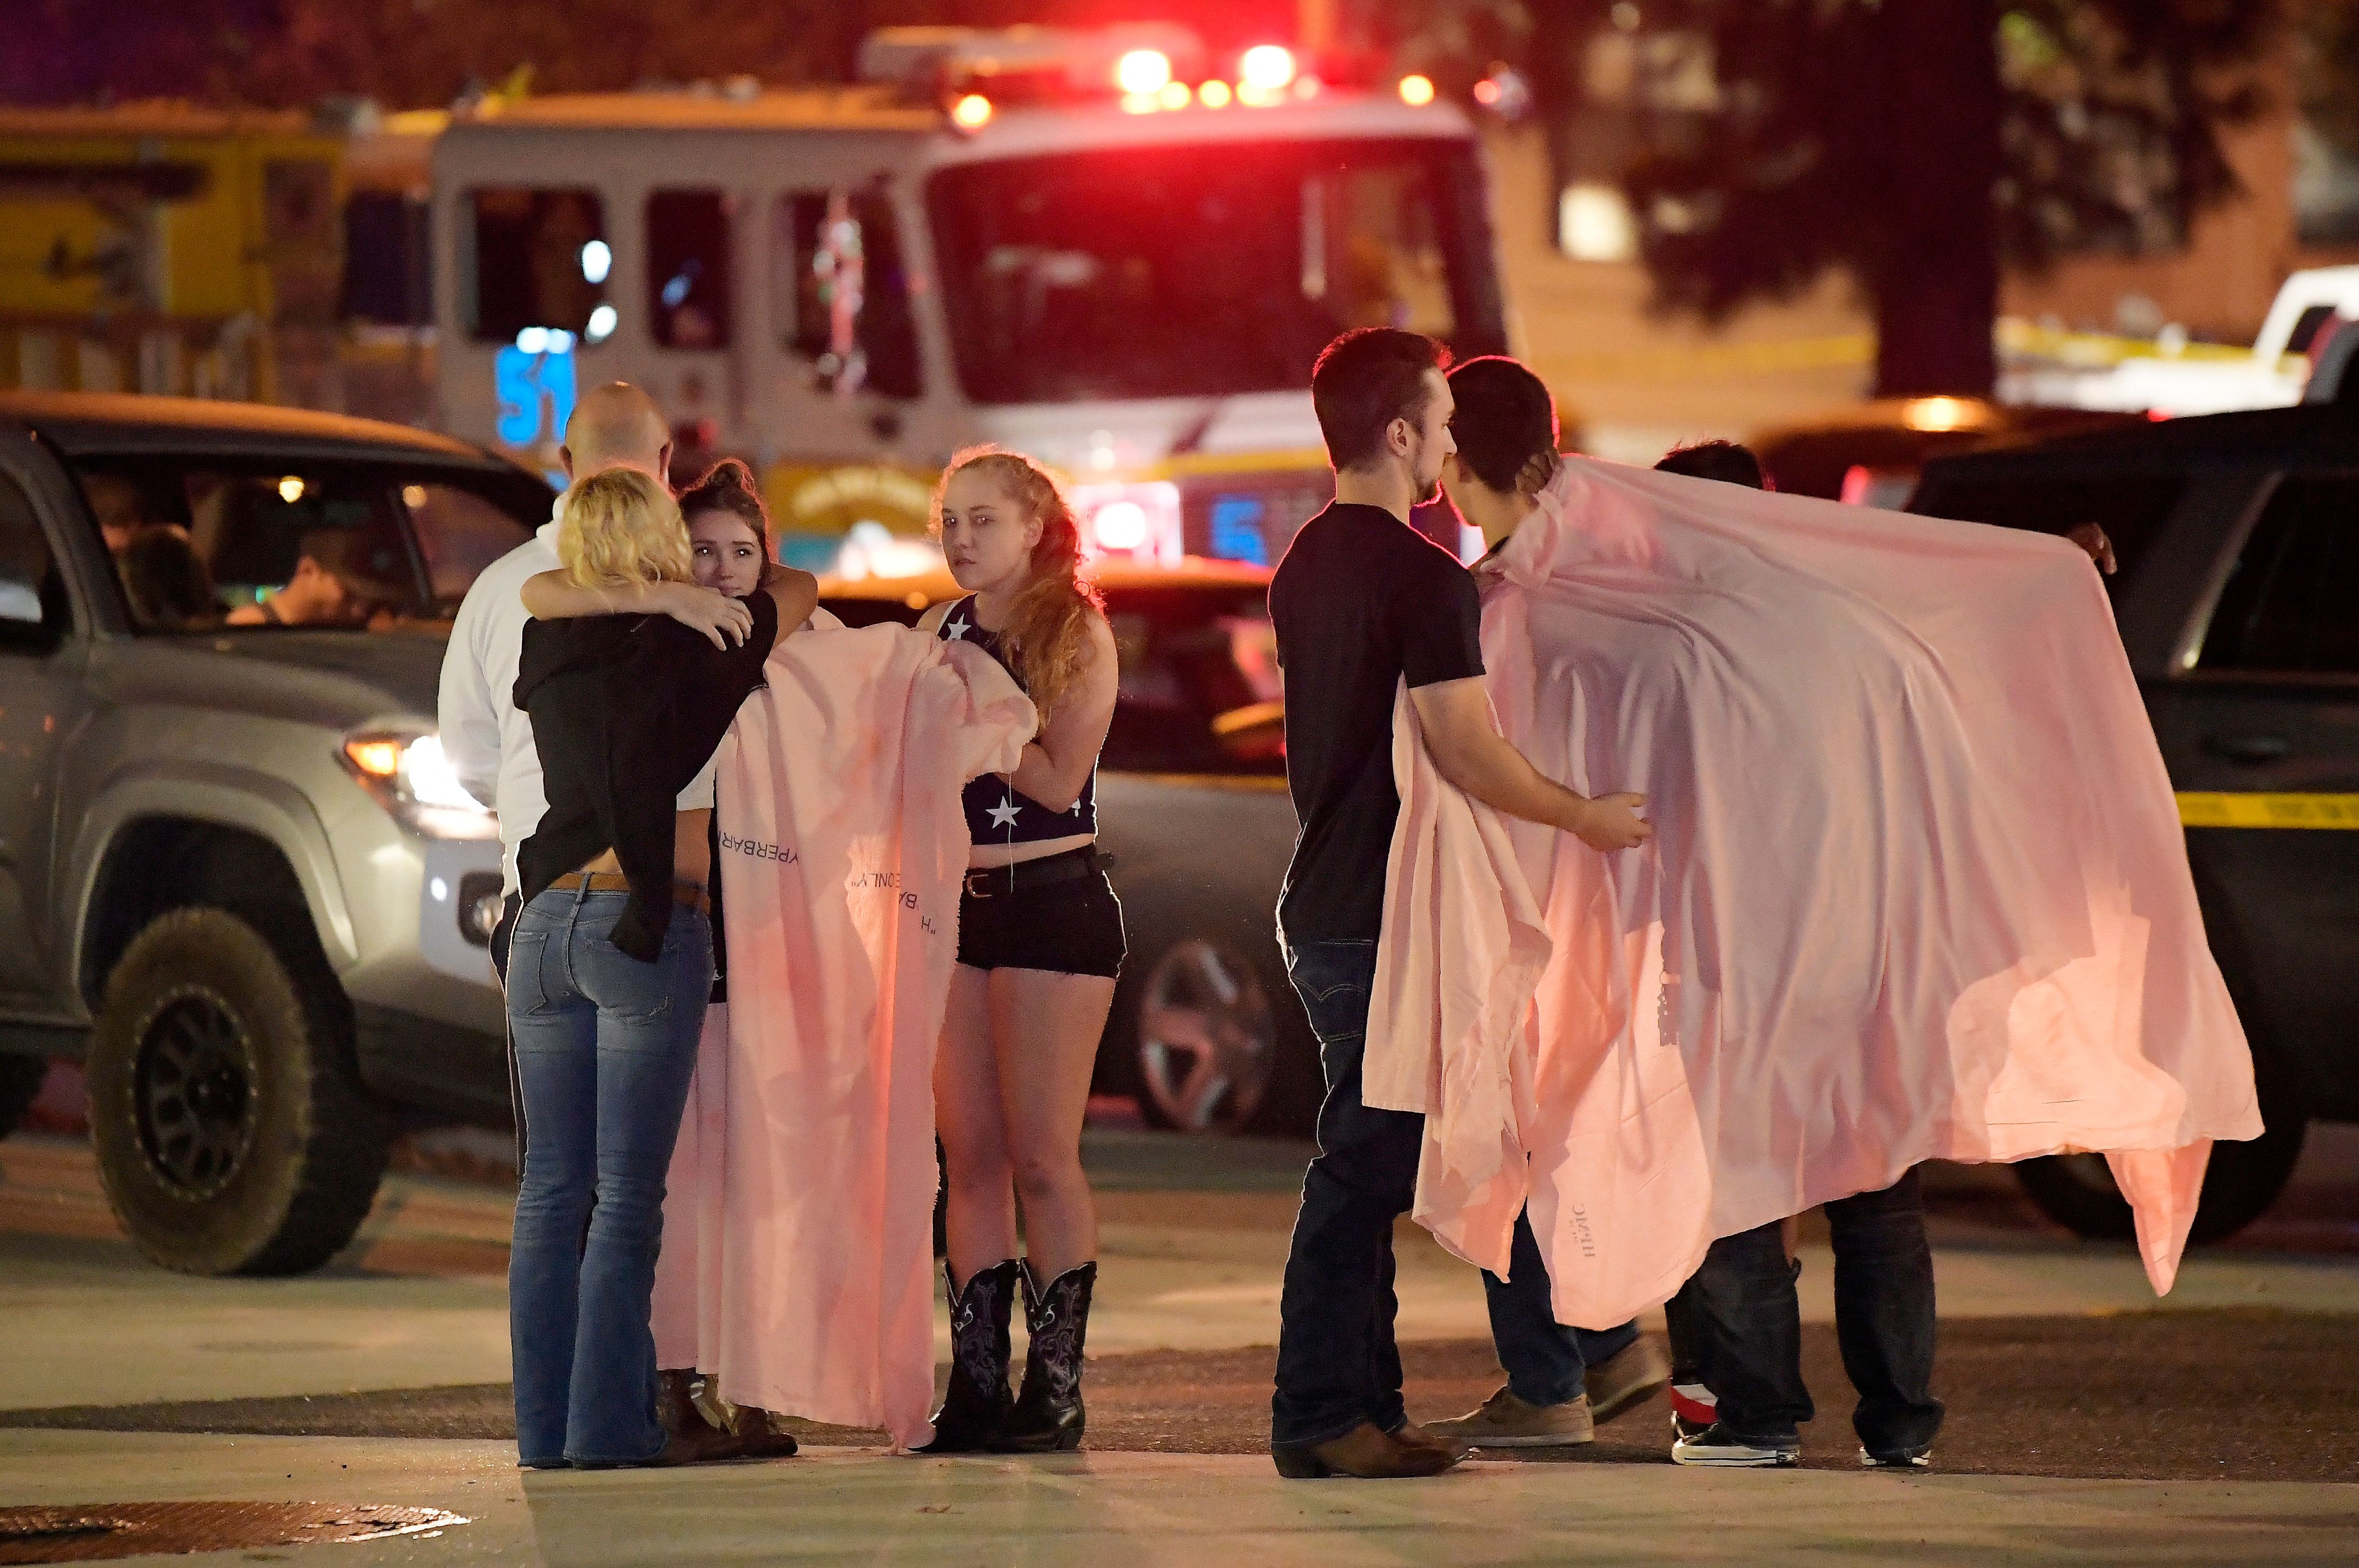 """People comfort each other as they stand near the scene Thursday, Nov. 8, 2018, in Thousand Oaks, Calif. where a gunman opened fire Wednesday inside a country dance bar crowded with hundreds of people on """"college night,"""" wounding 11 people including a deputy who rushed to the scene. Ventura County sheriff's spokesman says gunman is dead inside the bar. (AP Photo/Mark J. Terrill)"""